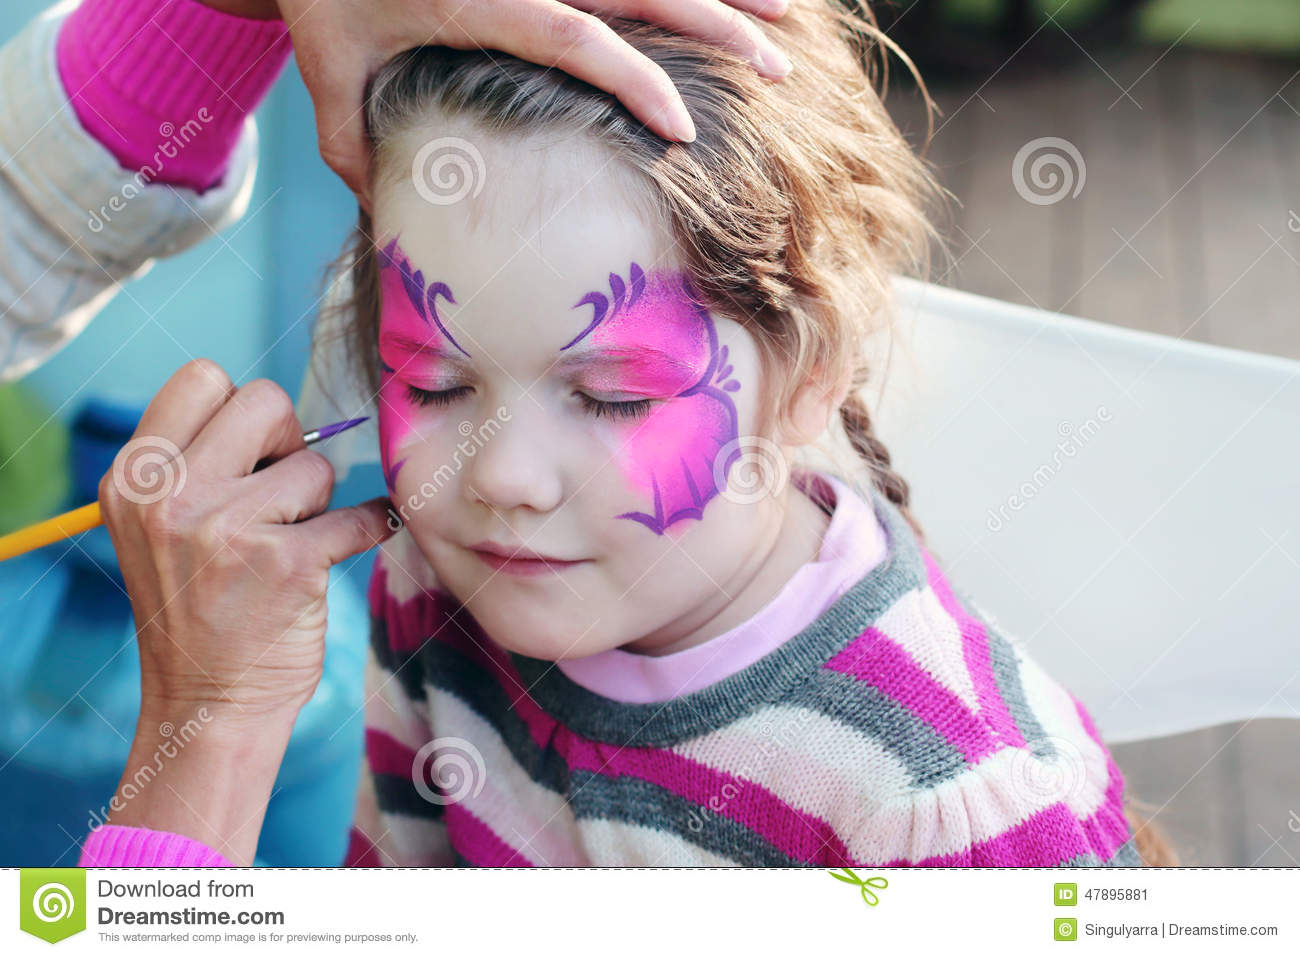 Female hand drawing purple butterfly on face